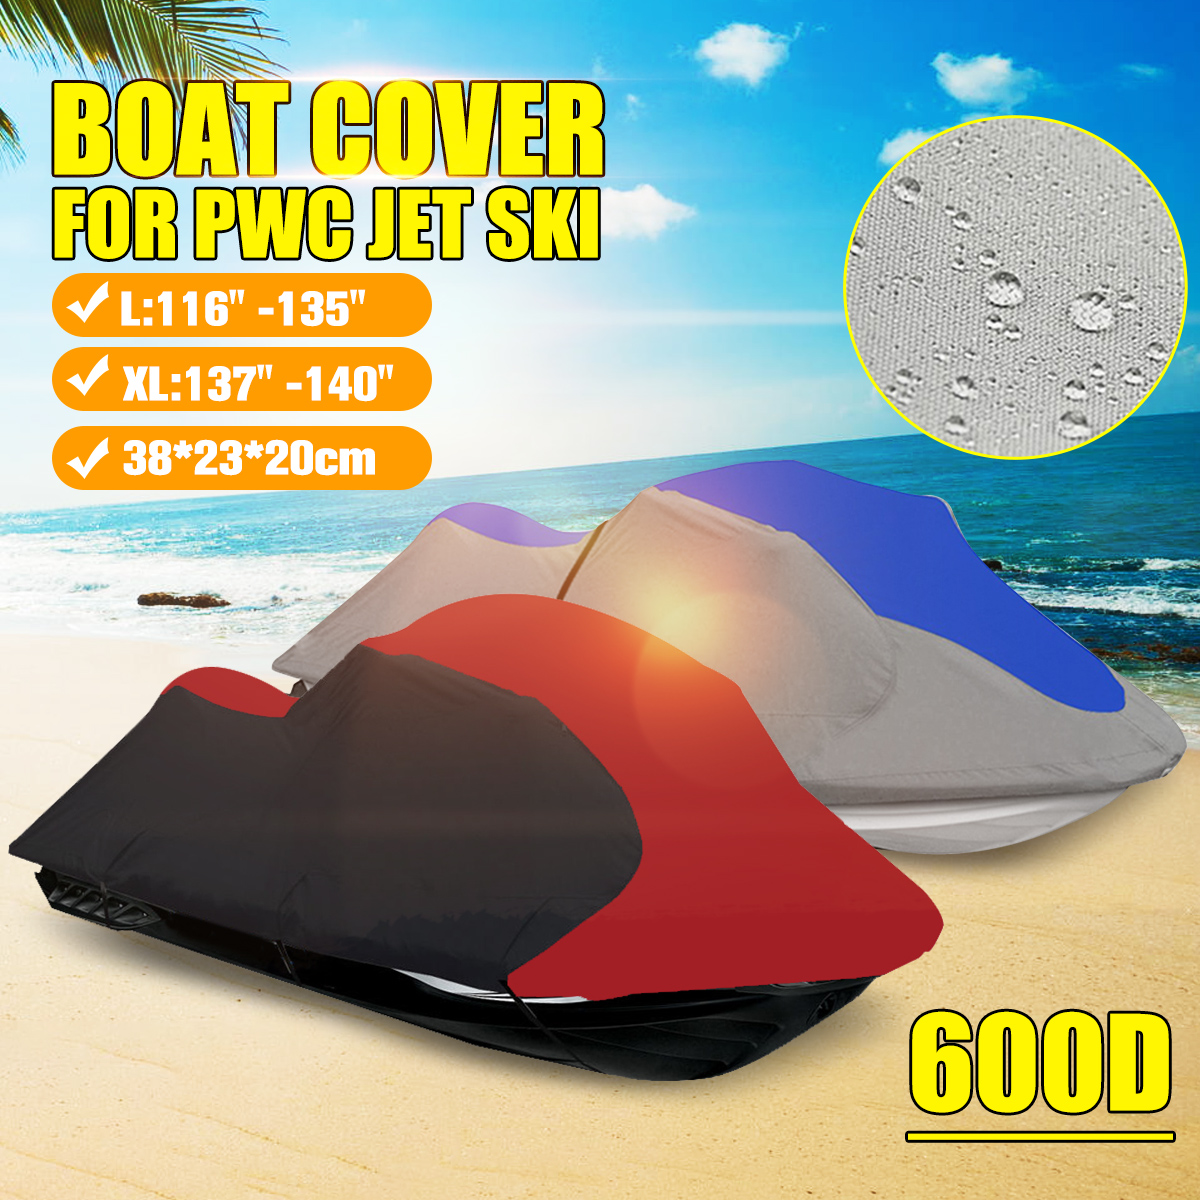 600D Polyester Universal 3 Person Solution Dyed Waterproof Boat Cover PWC Jet Ski 294-342cm And 348-356cm Length Bag